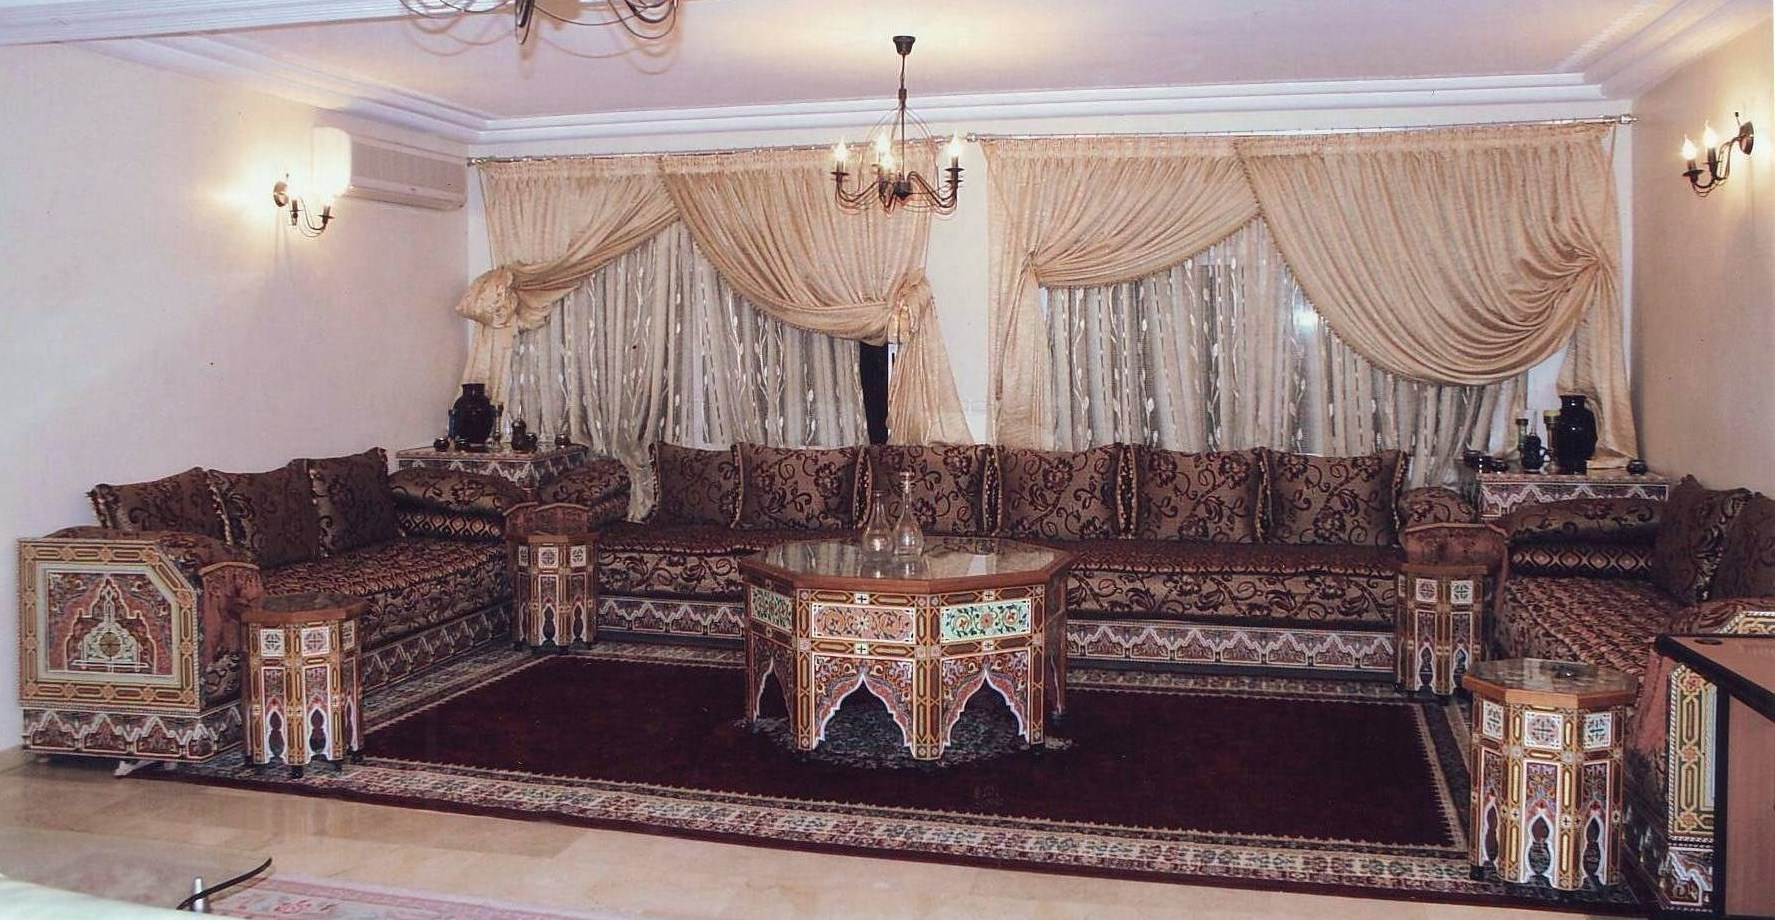 Apartment for Rental in fes 800 DH